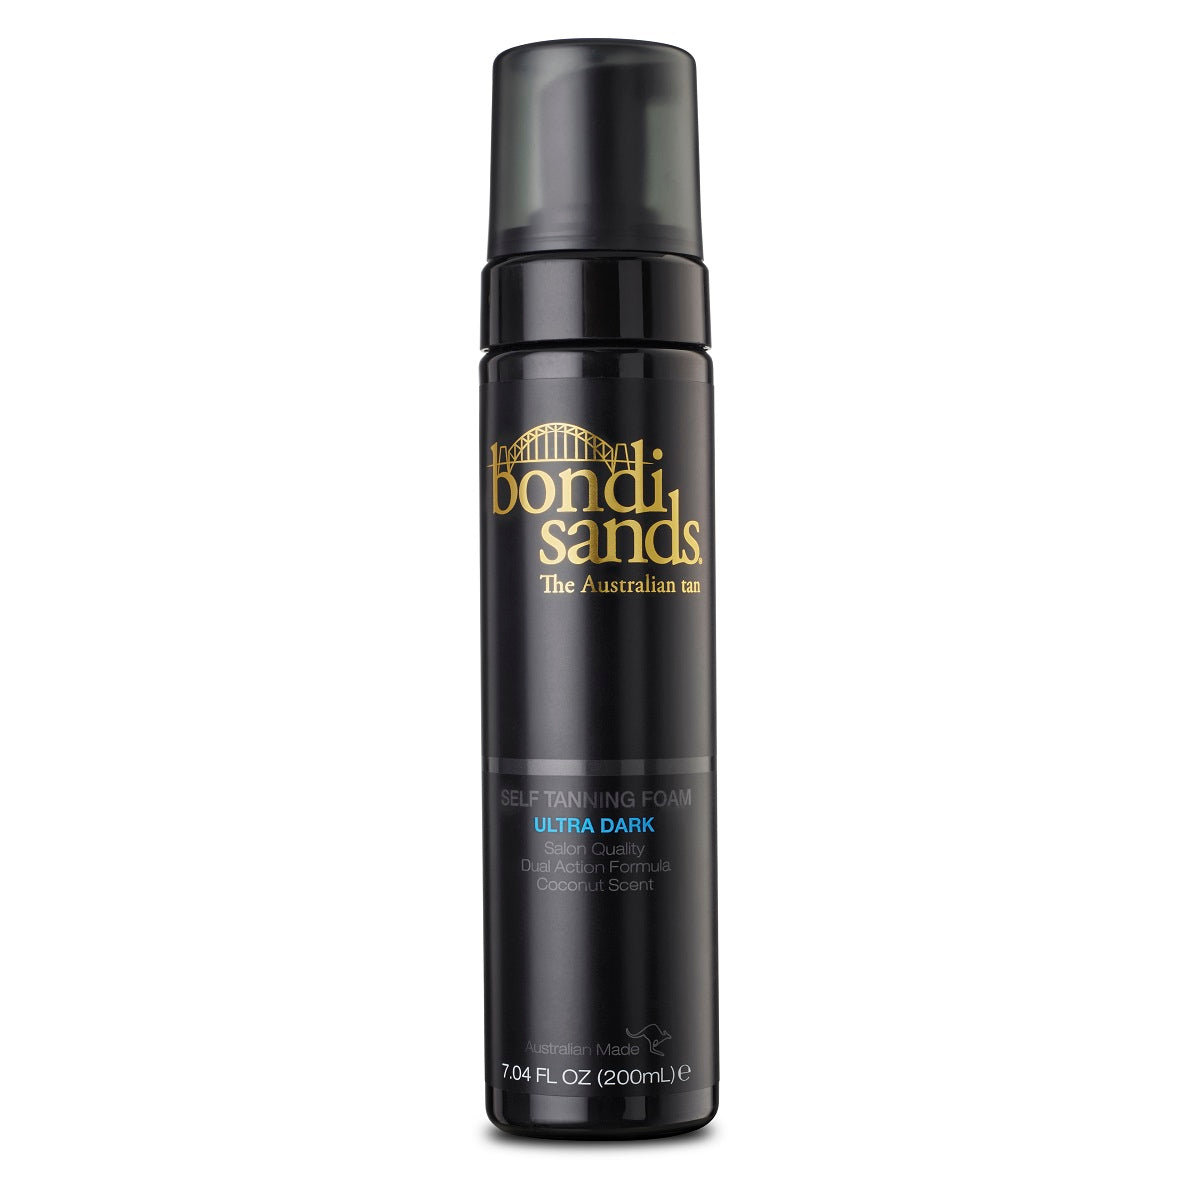 Bondi Sands Self Tanning Foam Ultra Dark